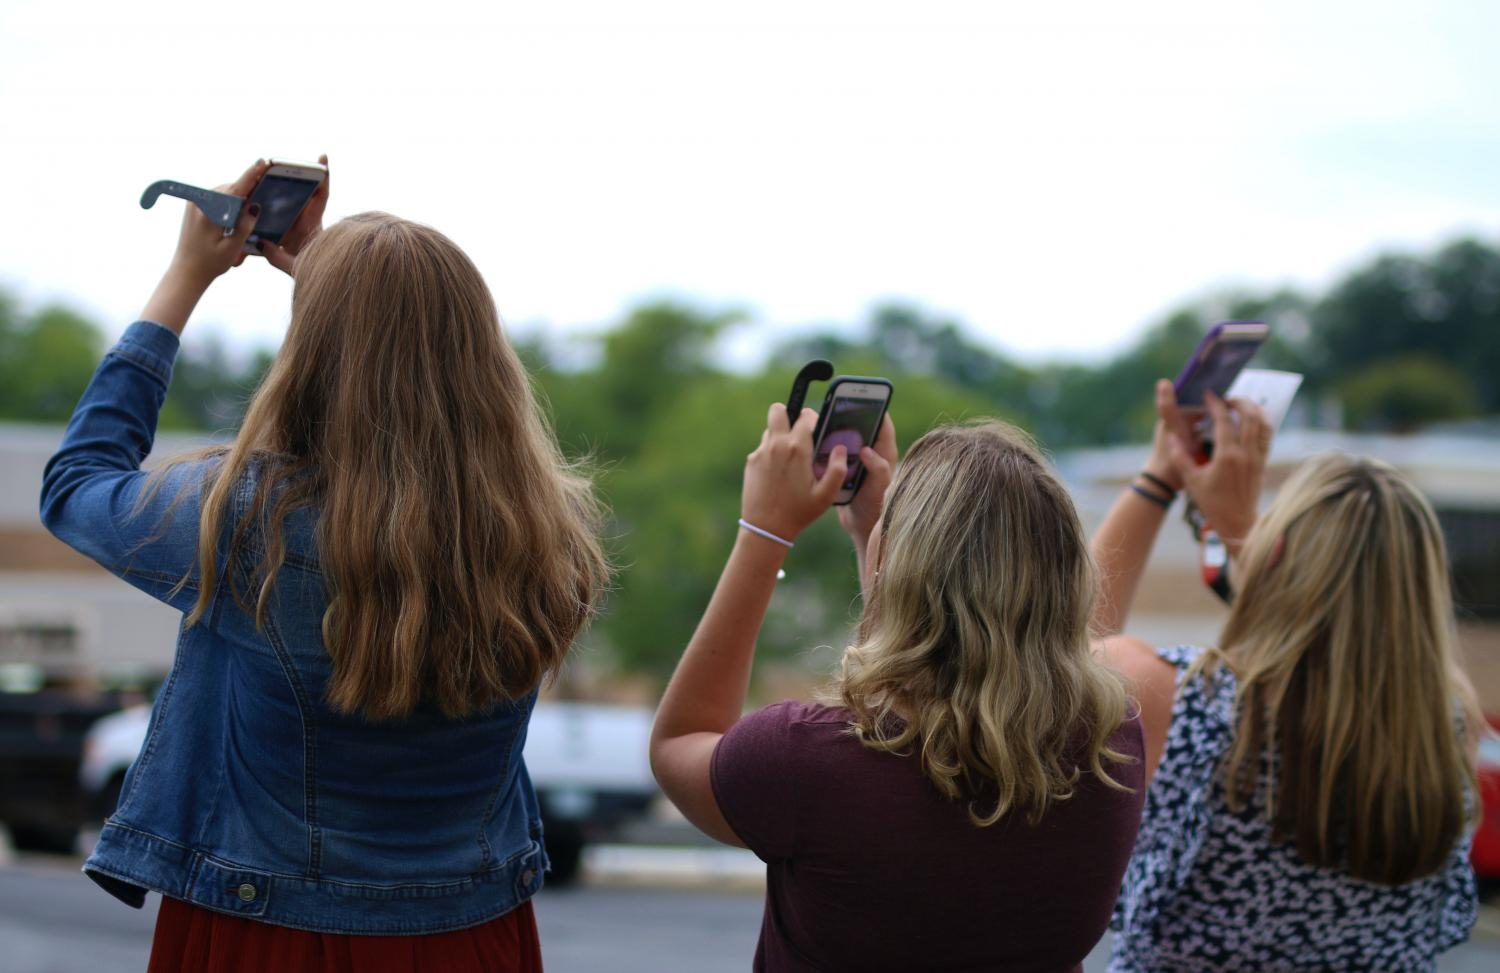 Others used their phones to view the eclipse, as it was not safe to look up with the naked eye, but it also was not visible at all times.